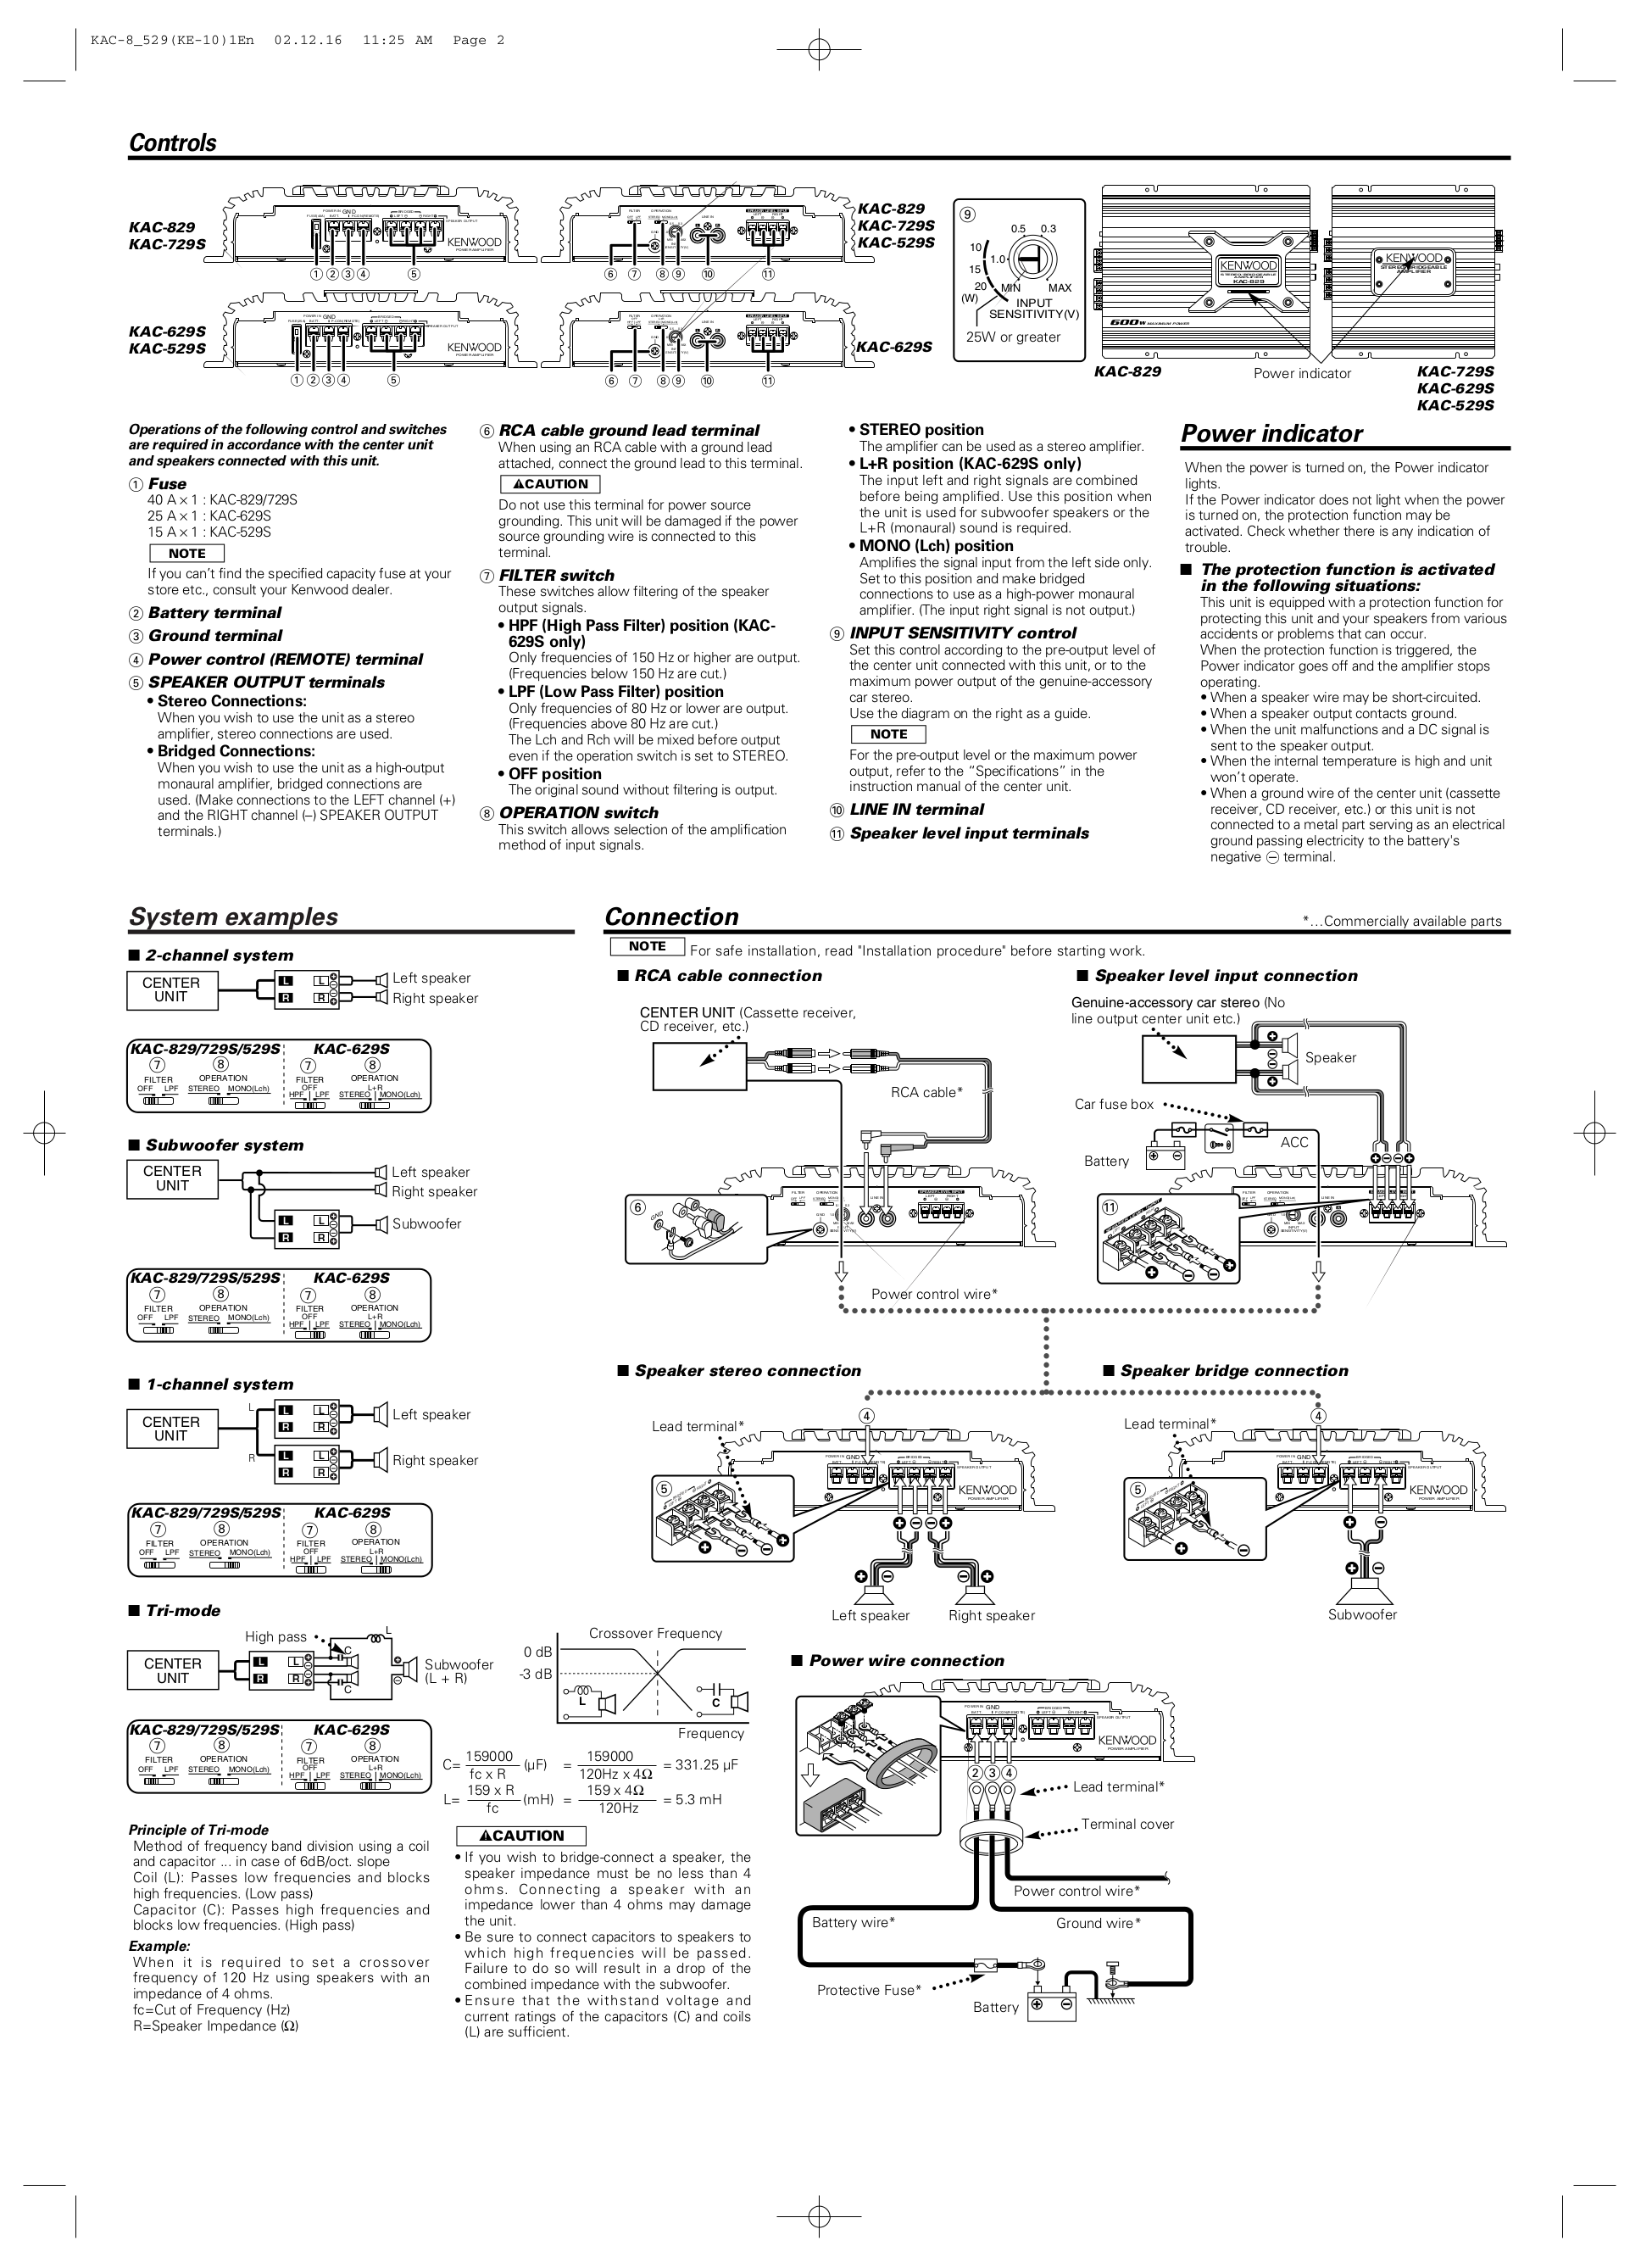 Pdf Manual For Kenwood Car Amplifier Kac 729s 2 Channel Wiring Diagram Page Preview